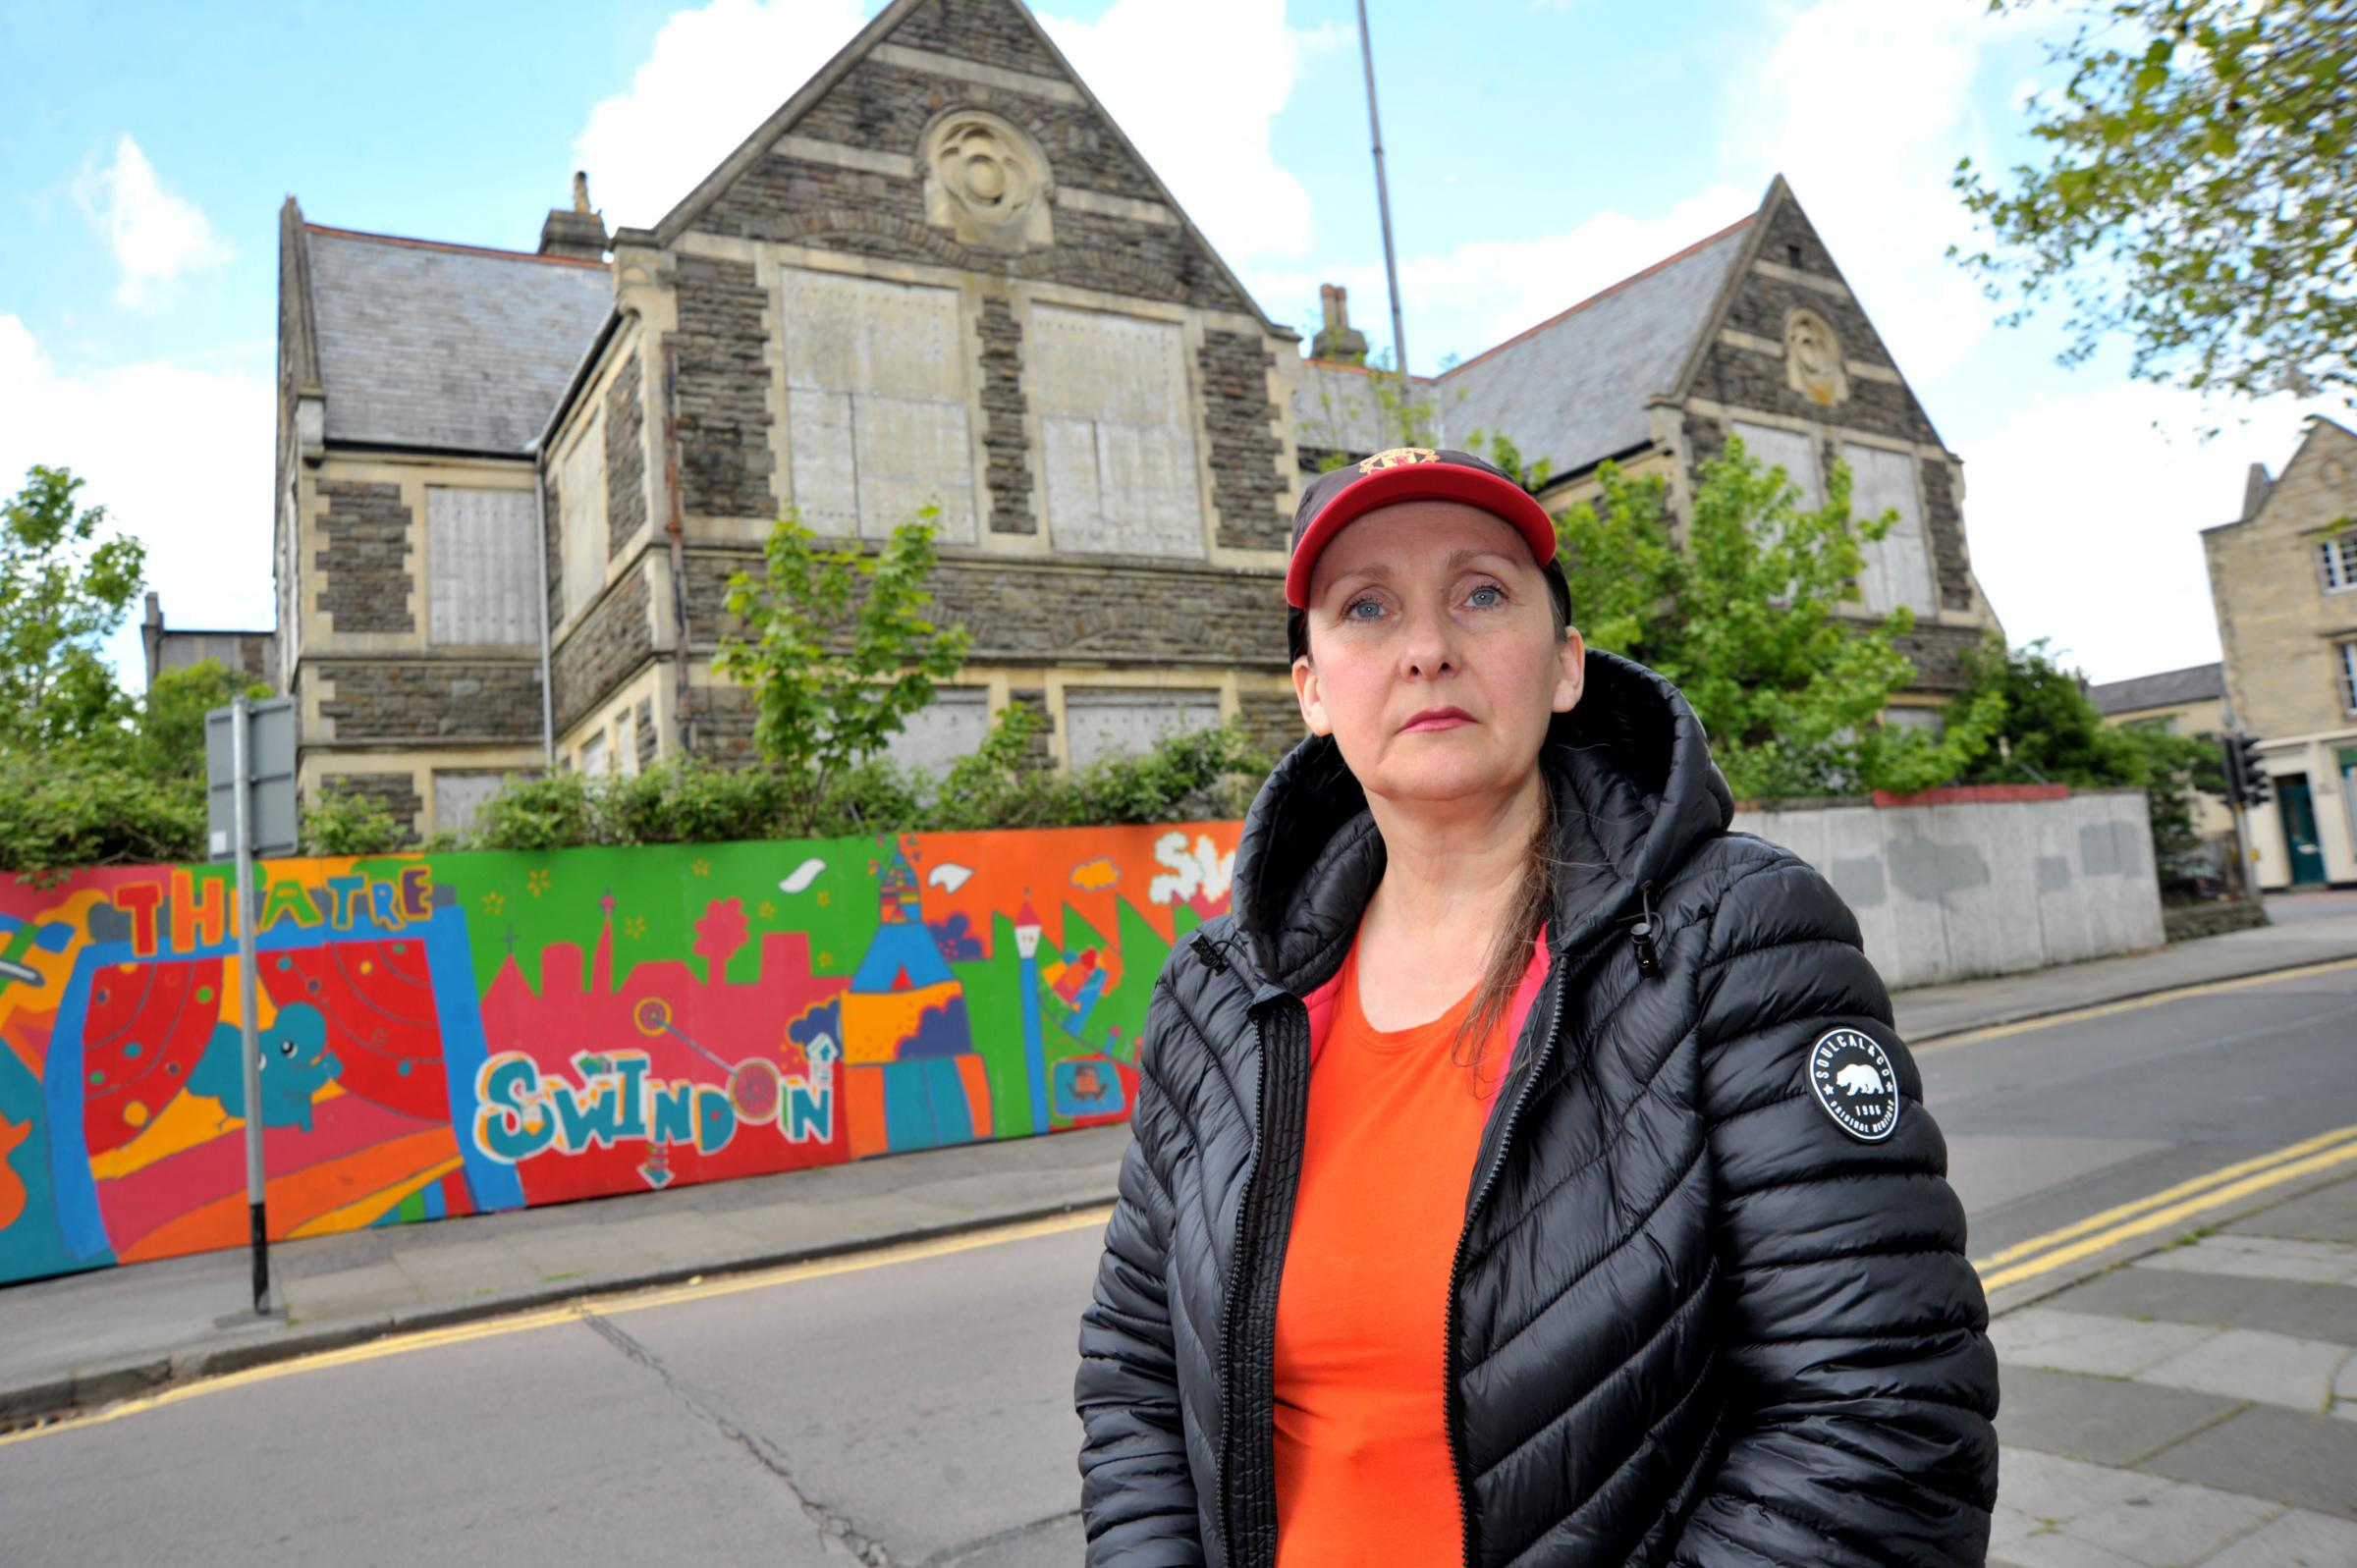 Petition to save Swindon Mechanic's Institute gains online support